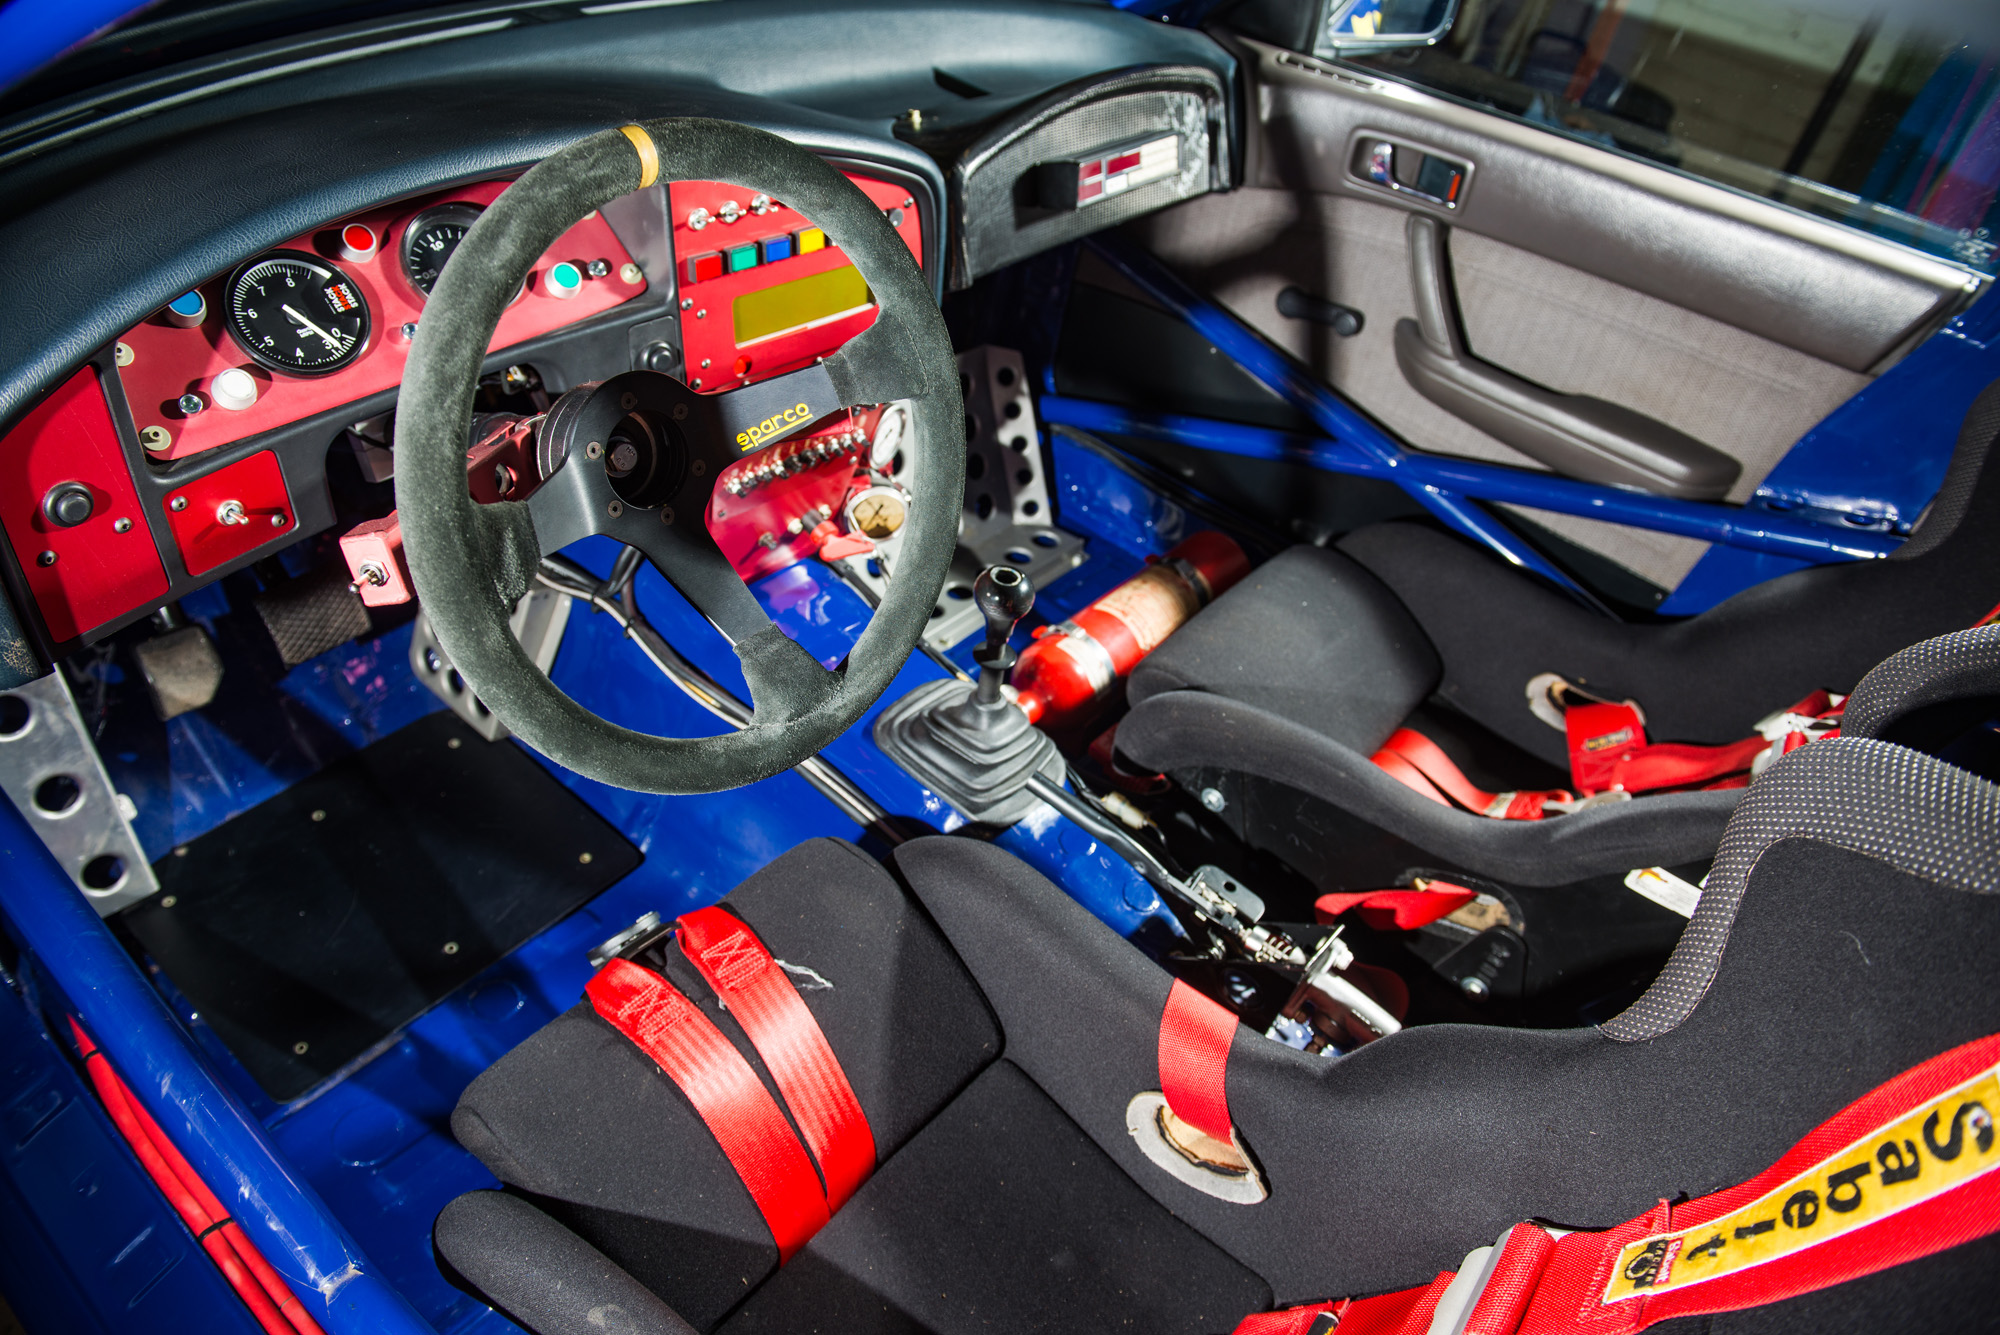 1993 Subaru Legacy RS Group A Ex Prodrive Rally Car Interior 1 2000px